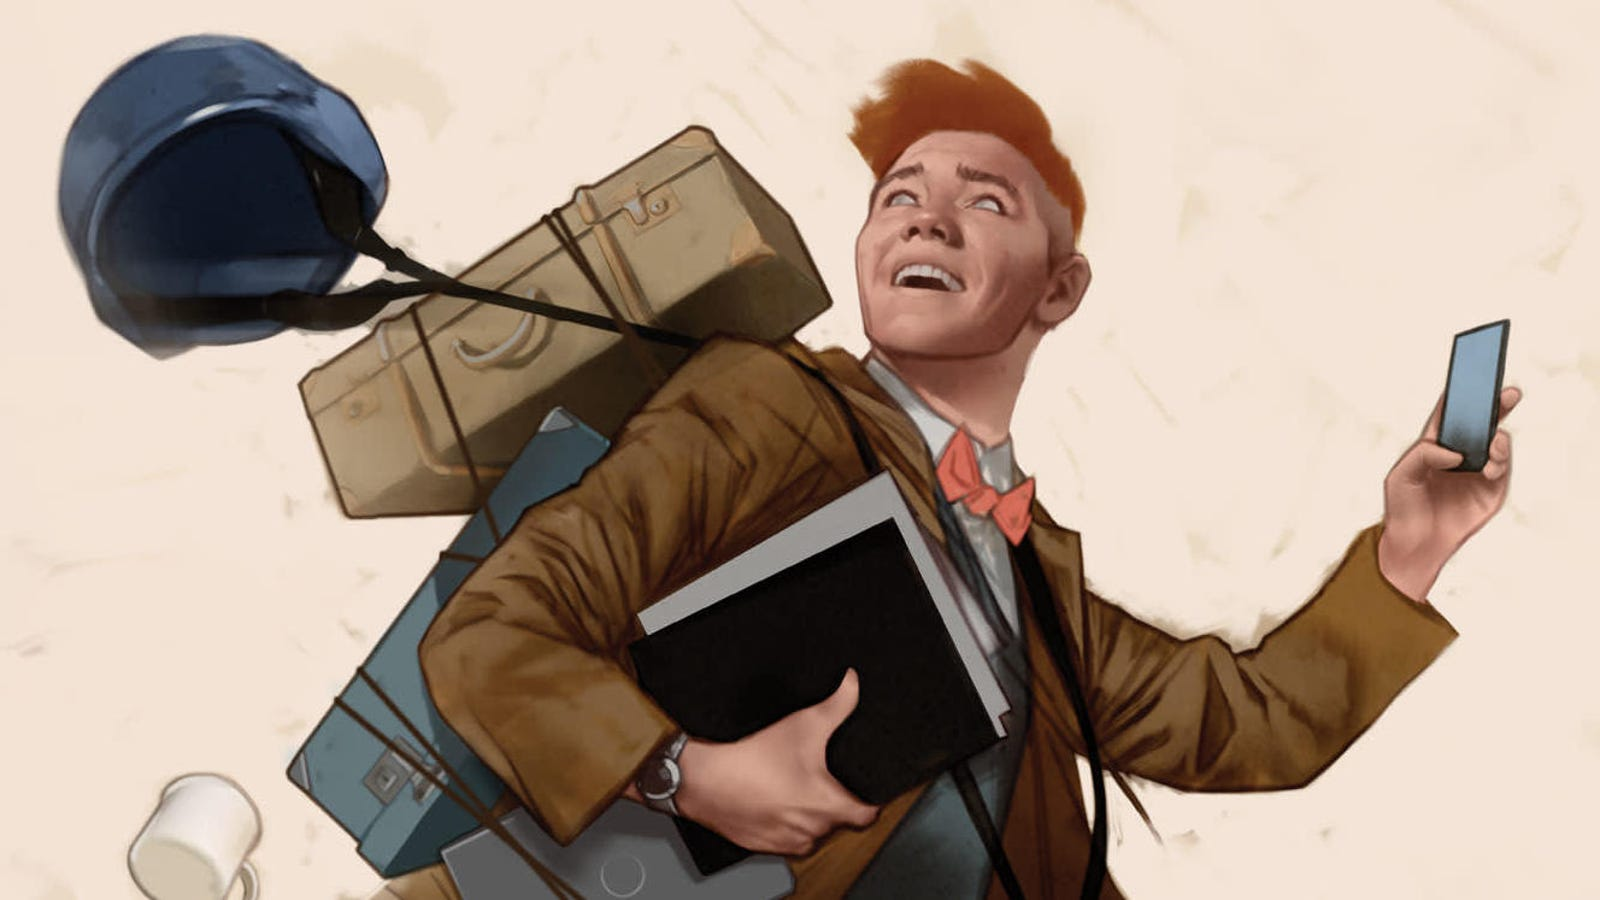 In Superman's Pal Jimmy Olsen, Pivoting to Video Is Perilous